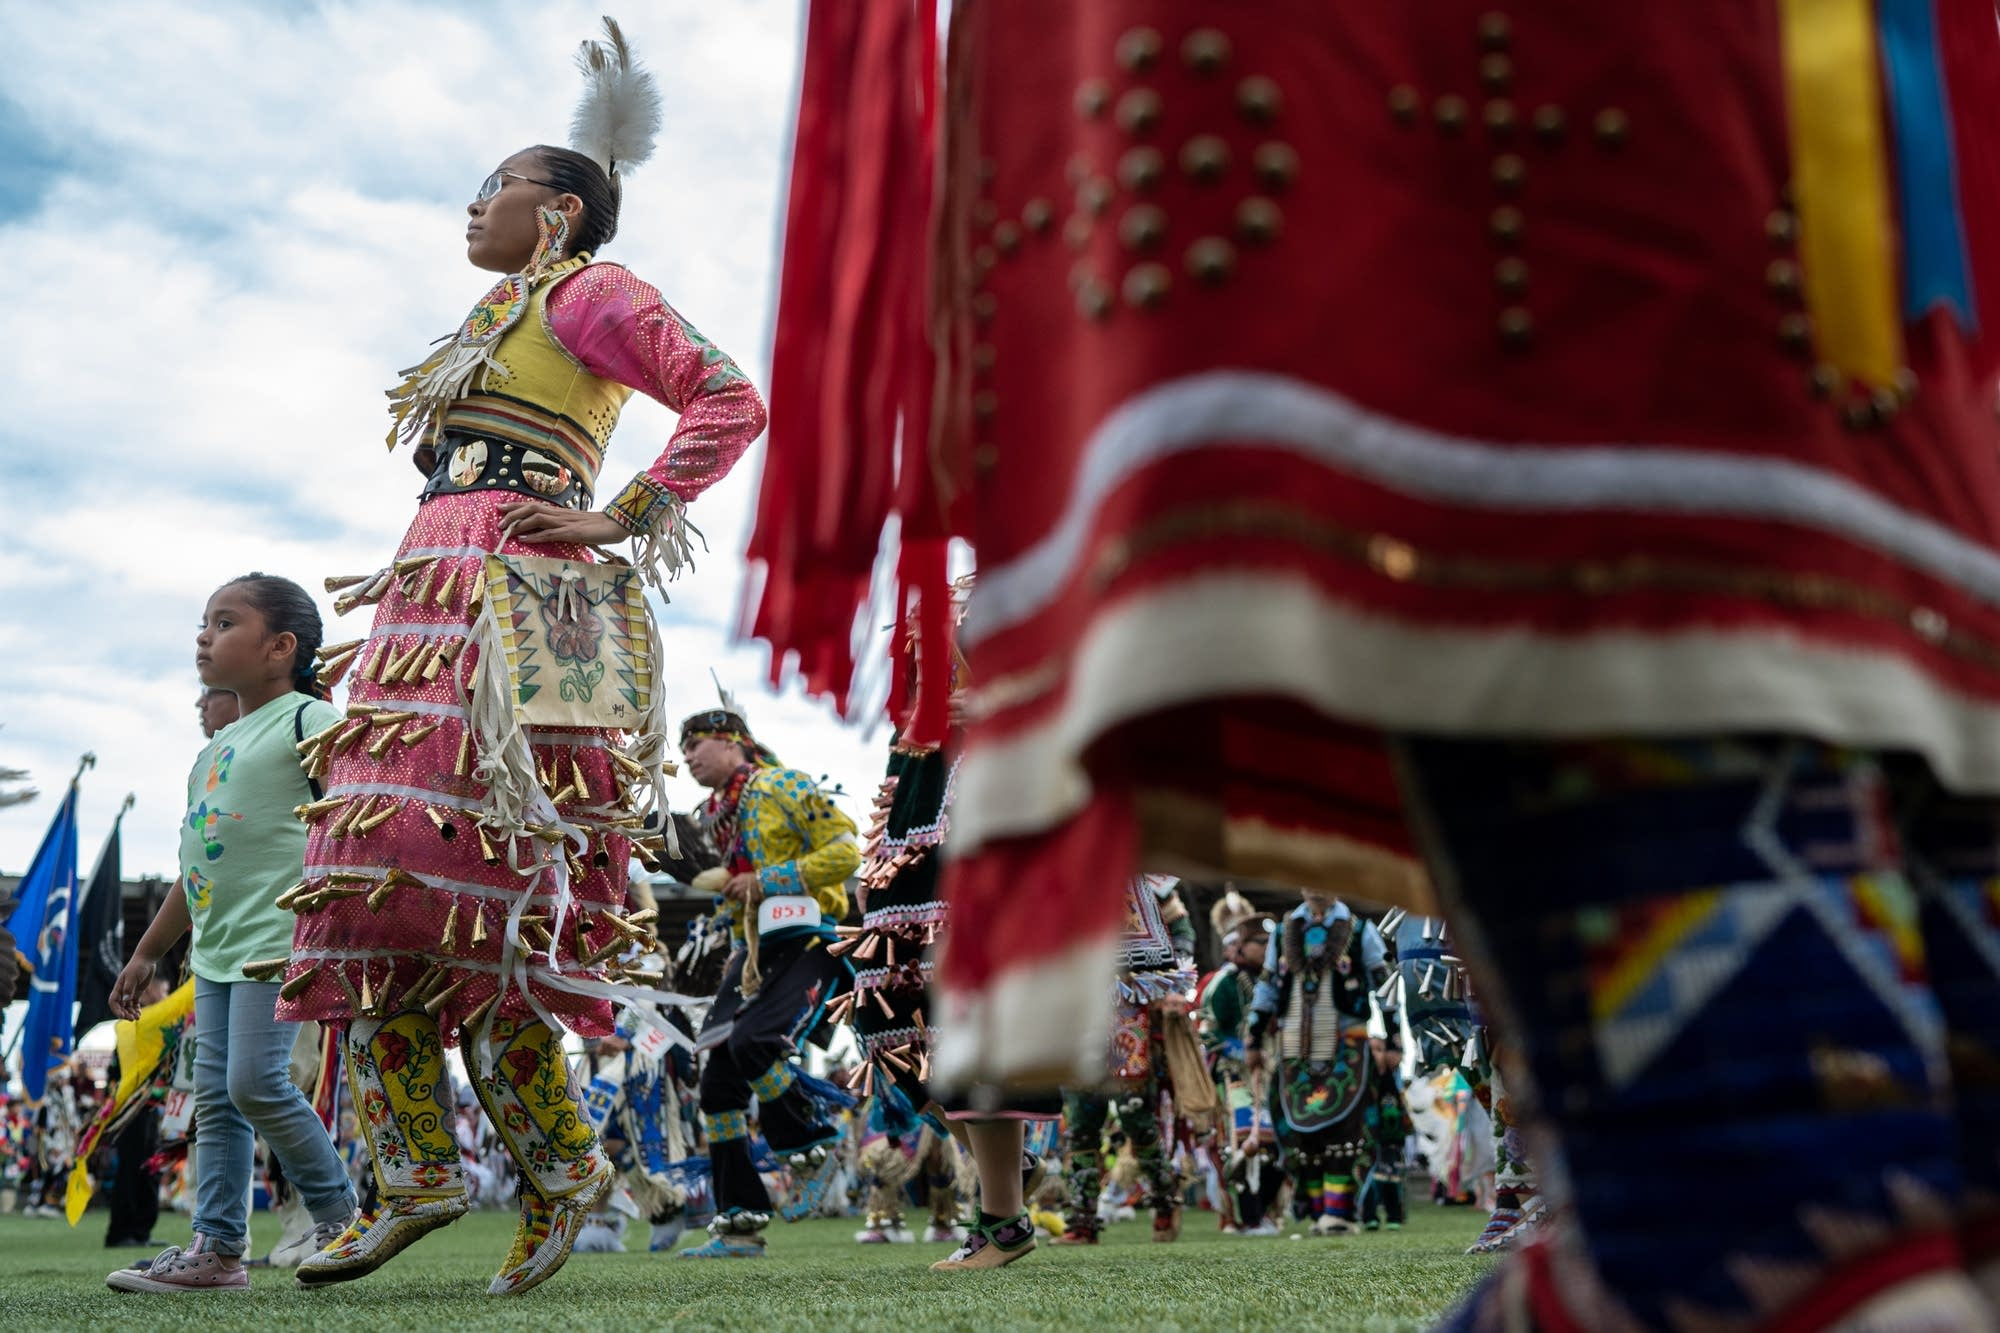 Pure love on the dance floor': Celebrating the jingle dress